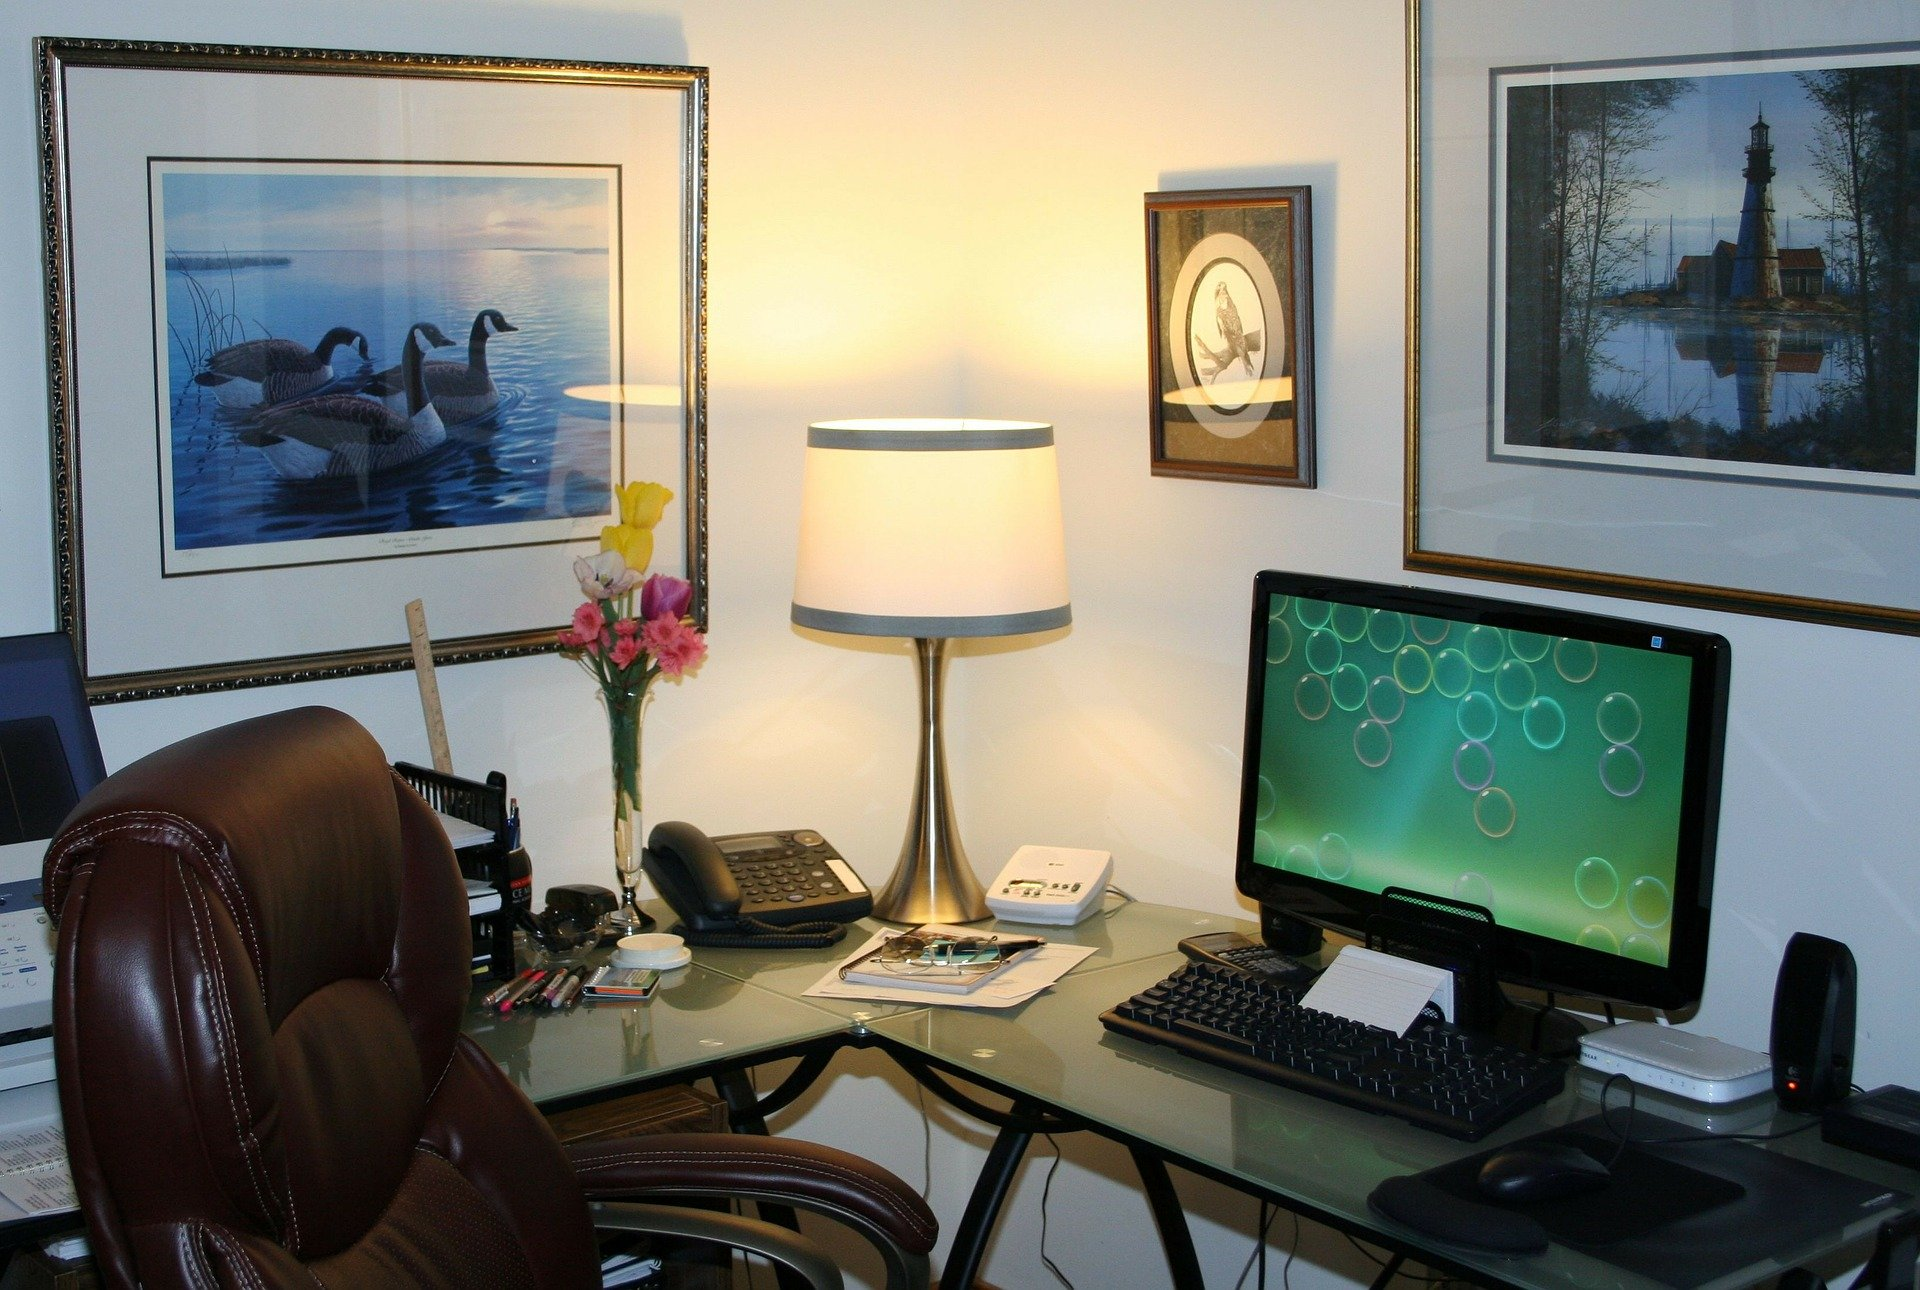 A home office, including hanging pictures, a computer on a desk and an office chair